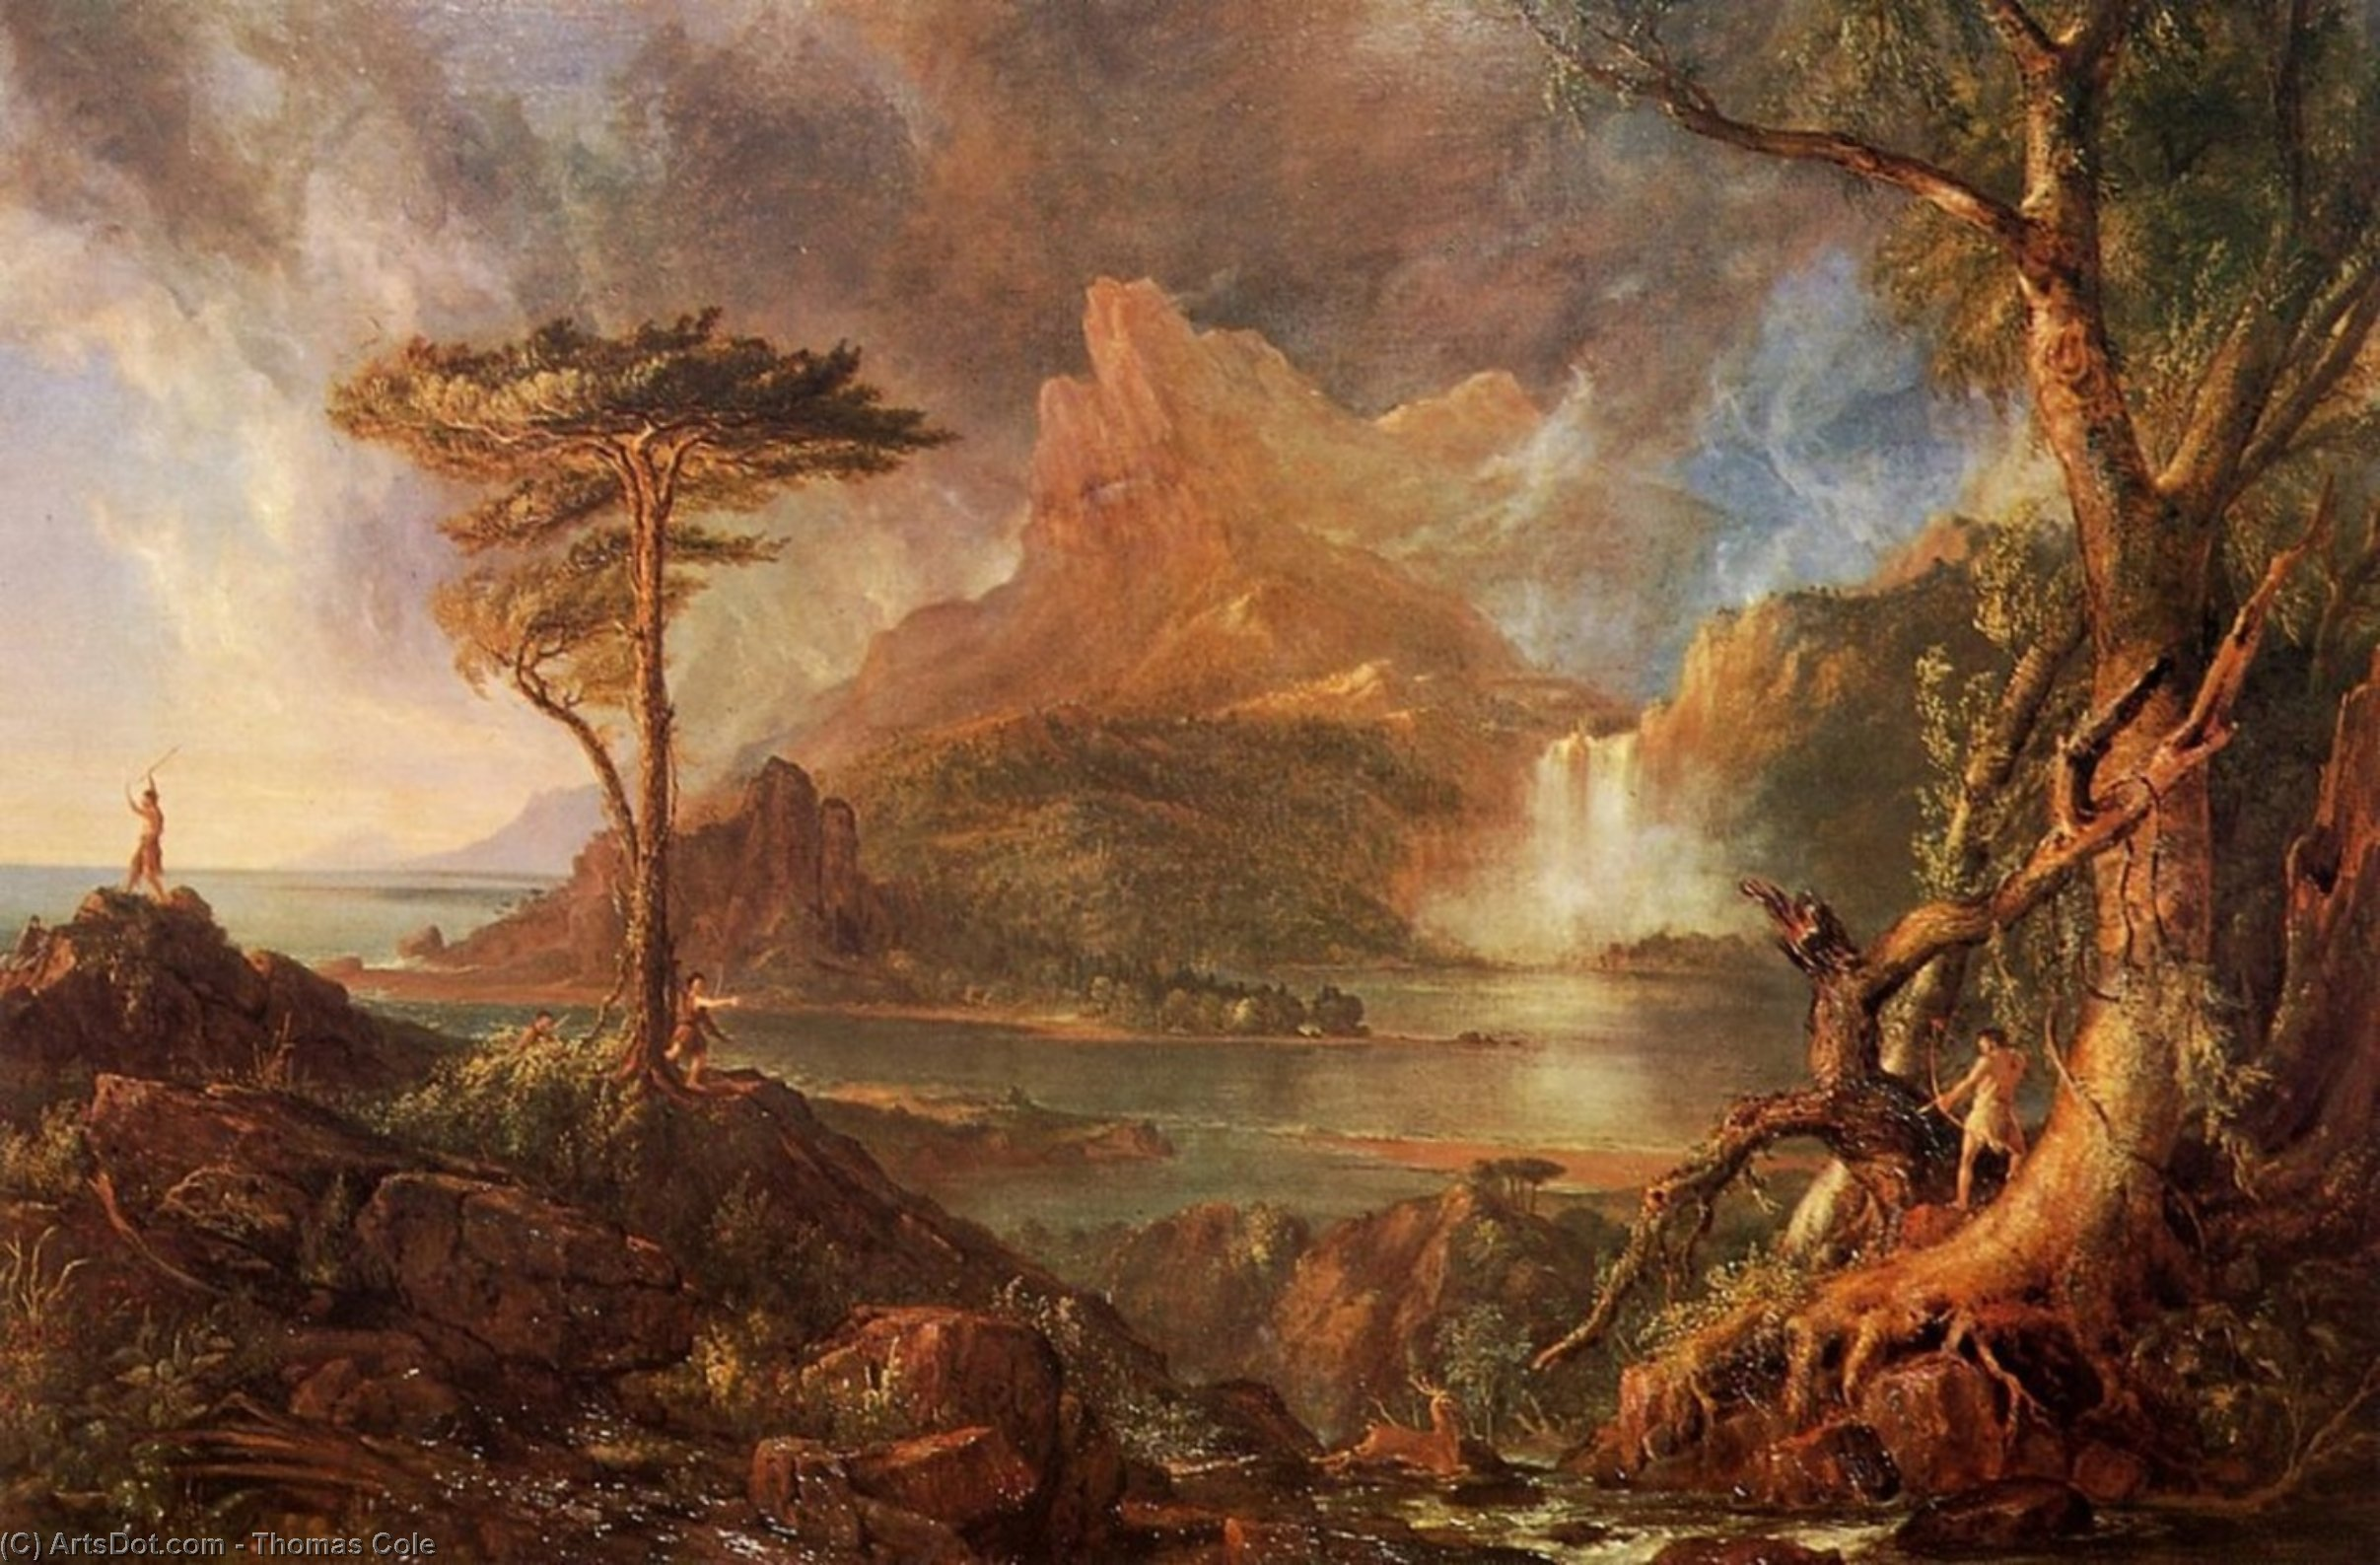 a selvaggio scena, olio su tela di Thomas Cole (1801-1848, United Kingdom)